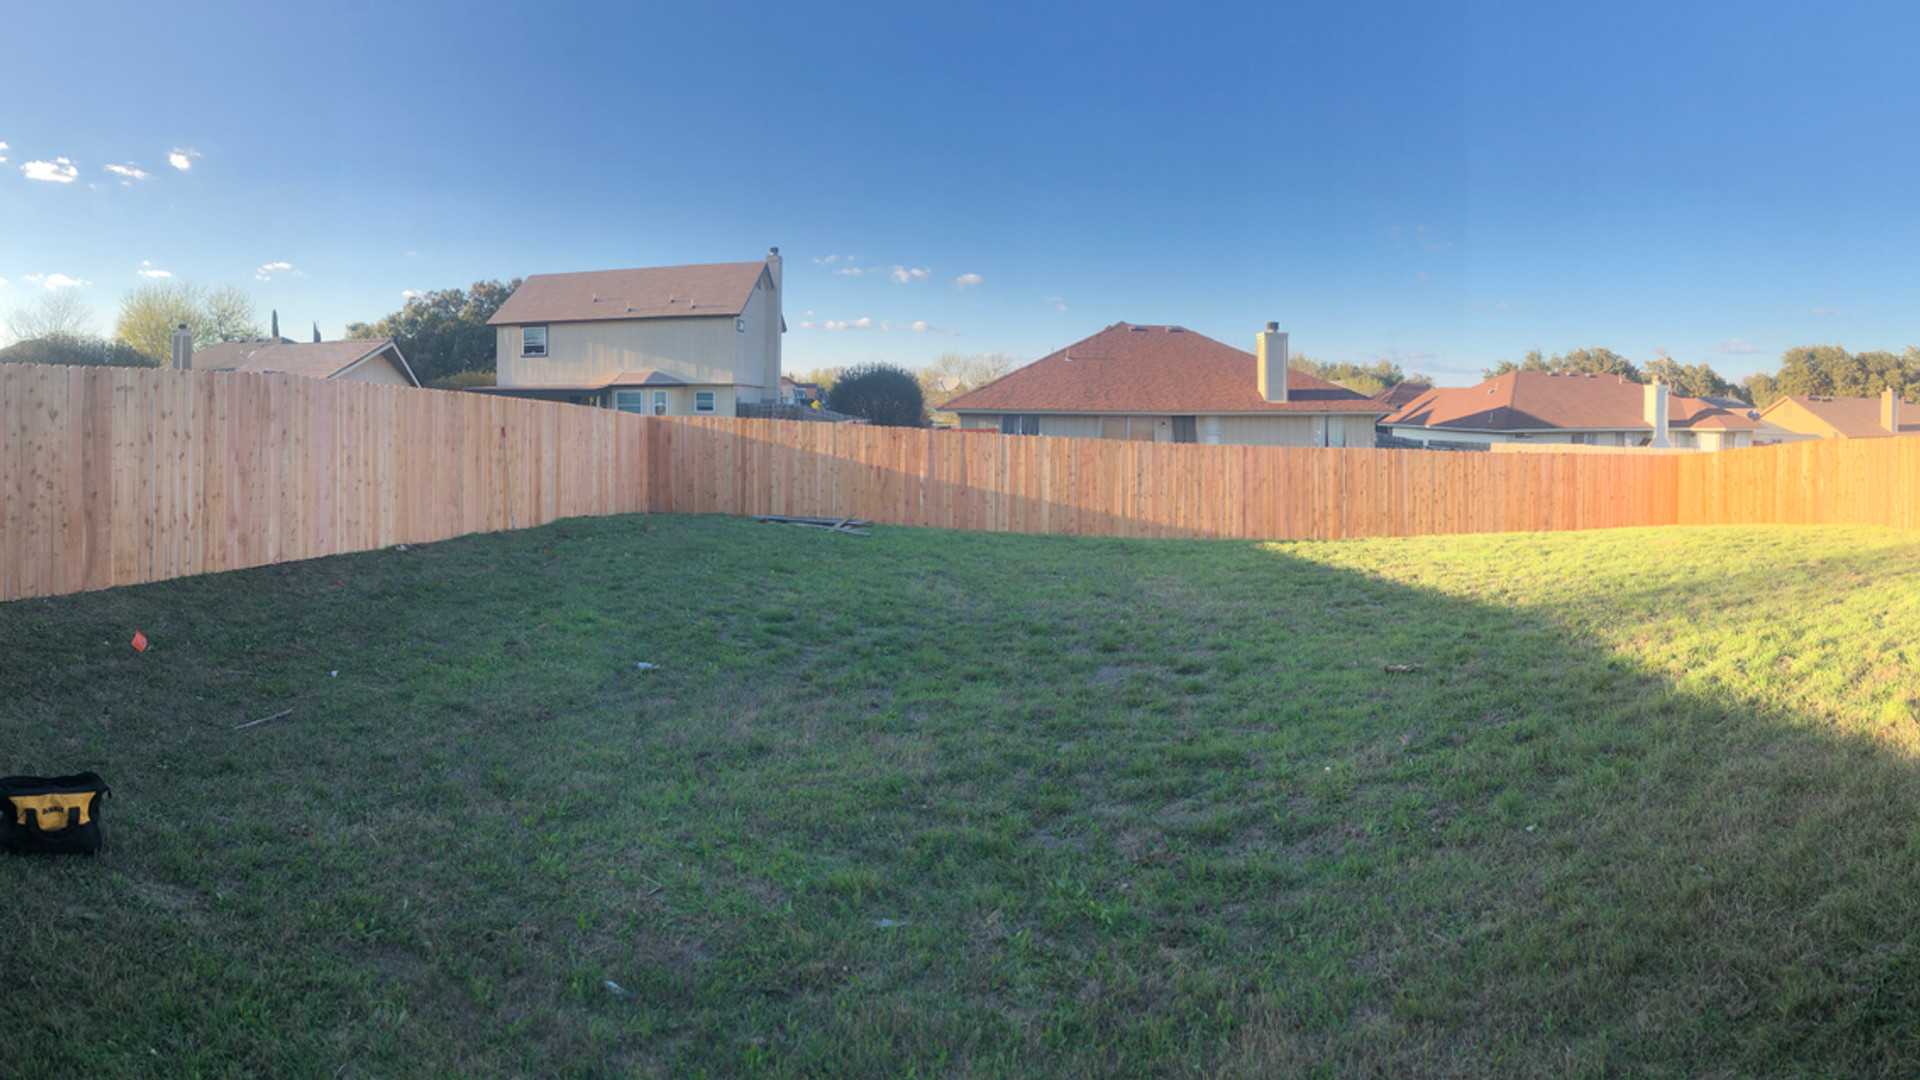 Standard Privacy Fence